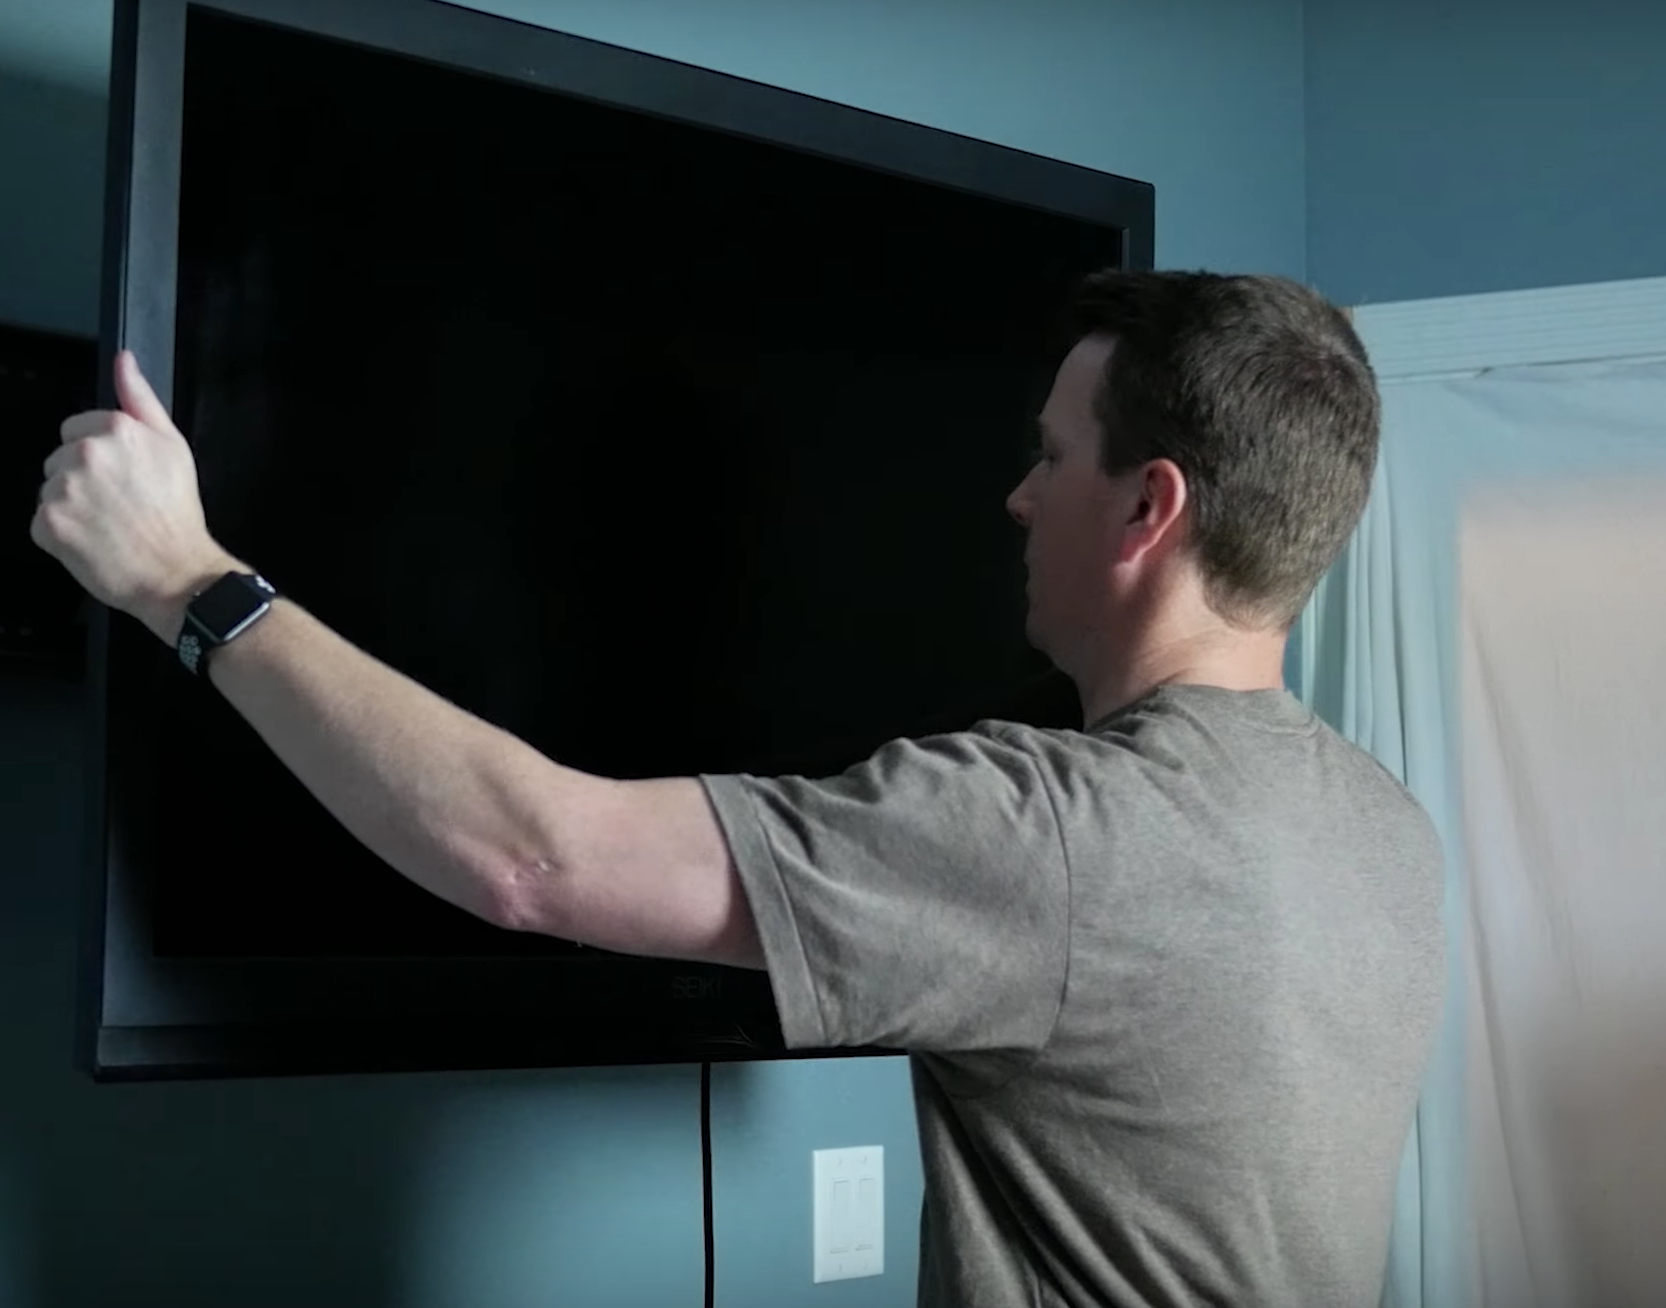 How to Mount a TV to the Wall, Step by Step